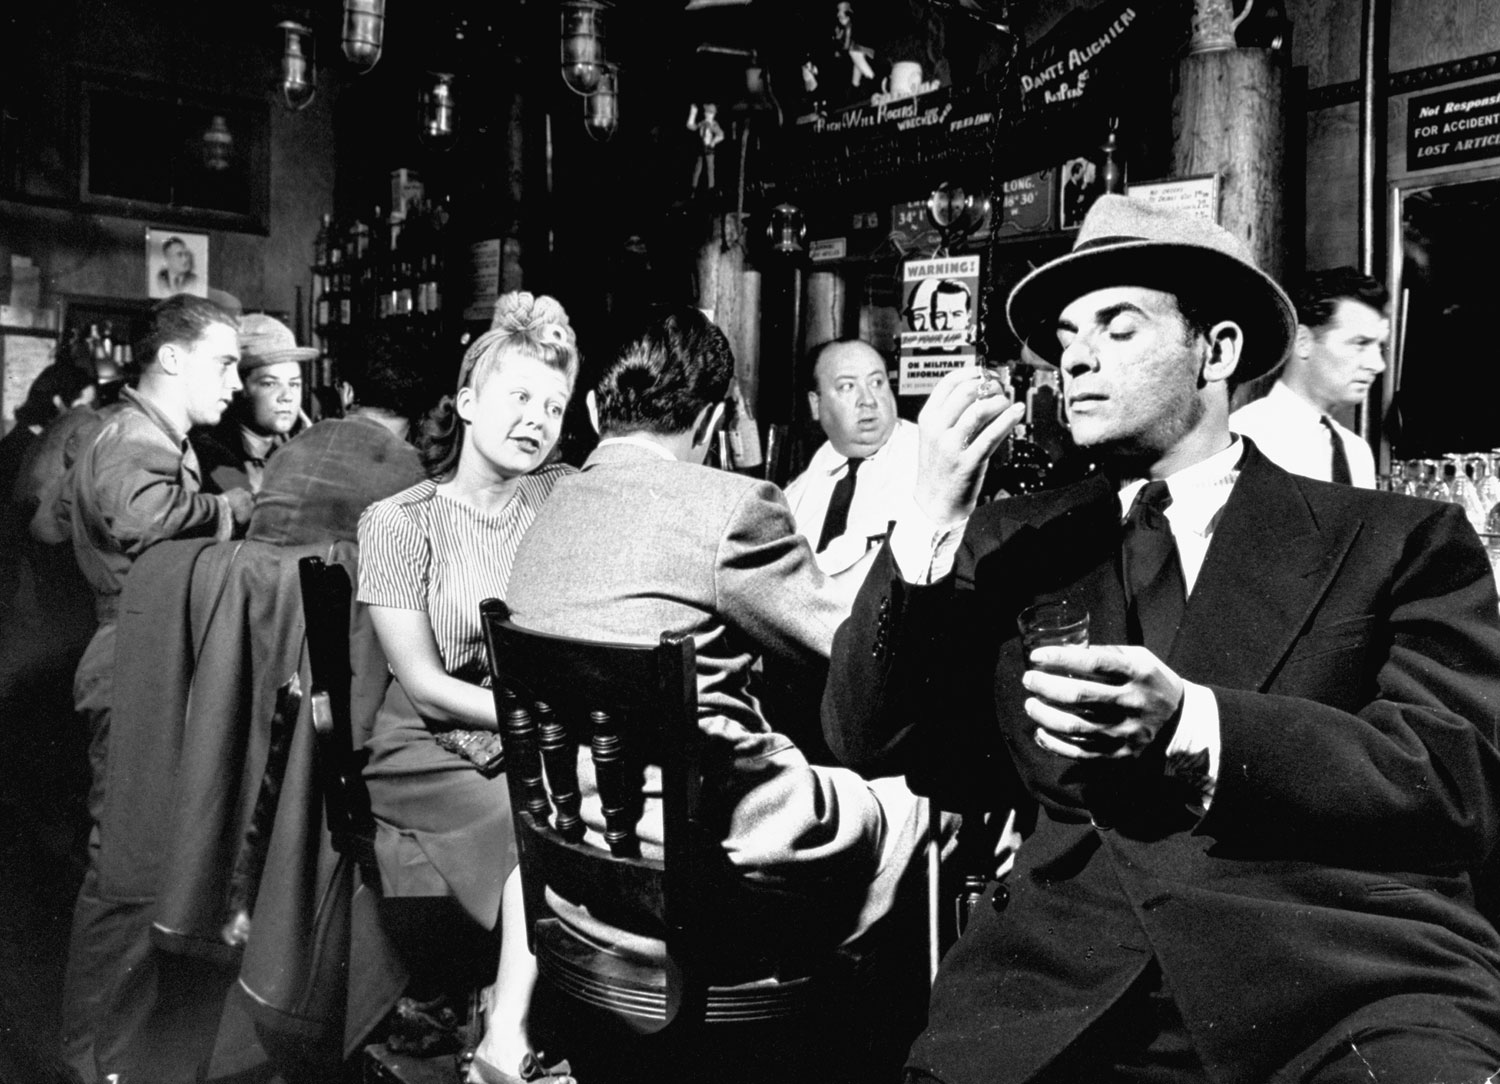 Caption from LIFE.  At the Friendship Cafe the manicurist tells her boyfriend: 'A customer told me today that lots of our troopships are sailing to Australia on Friday at midnight.' The shady-looking man standing next to them listens attentively. (Note bartender played by Alfred Hitchcock, center).